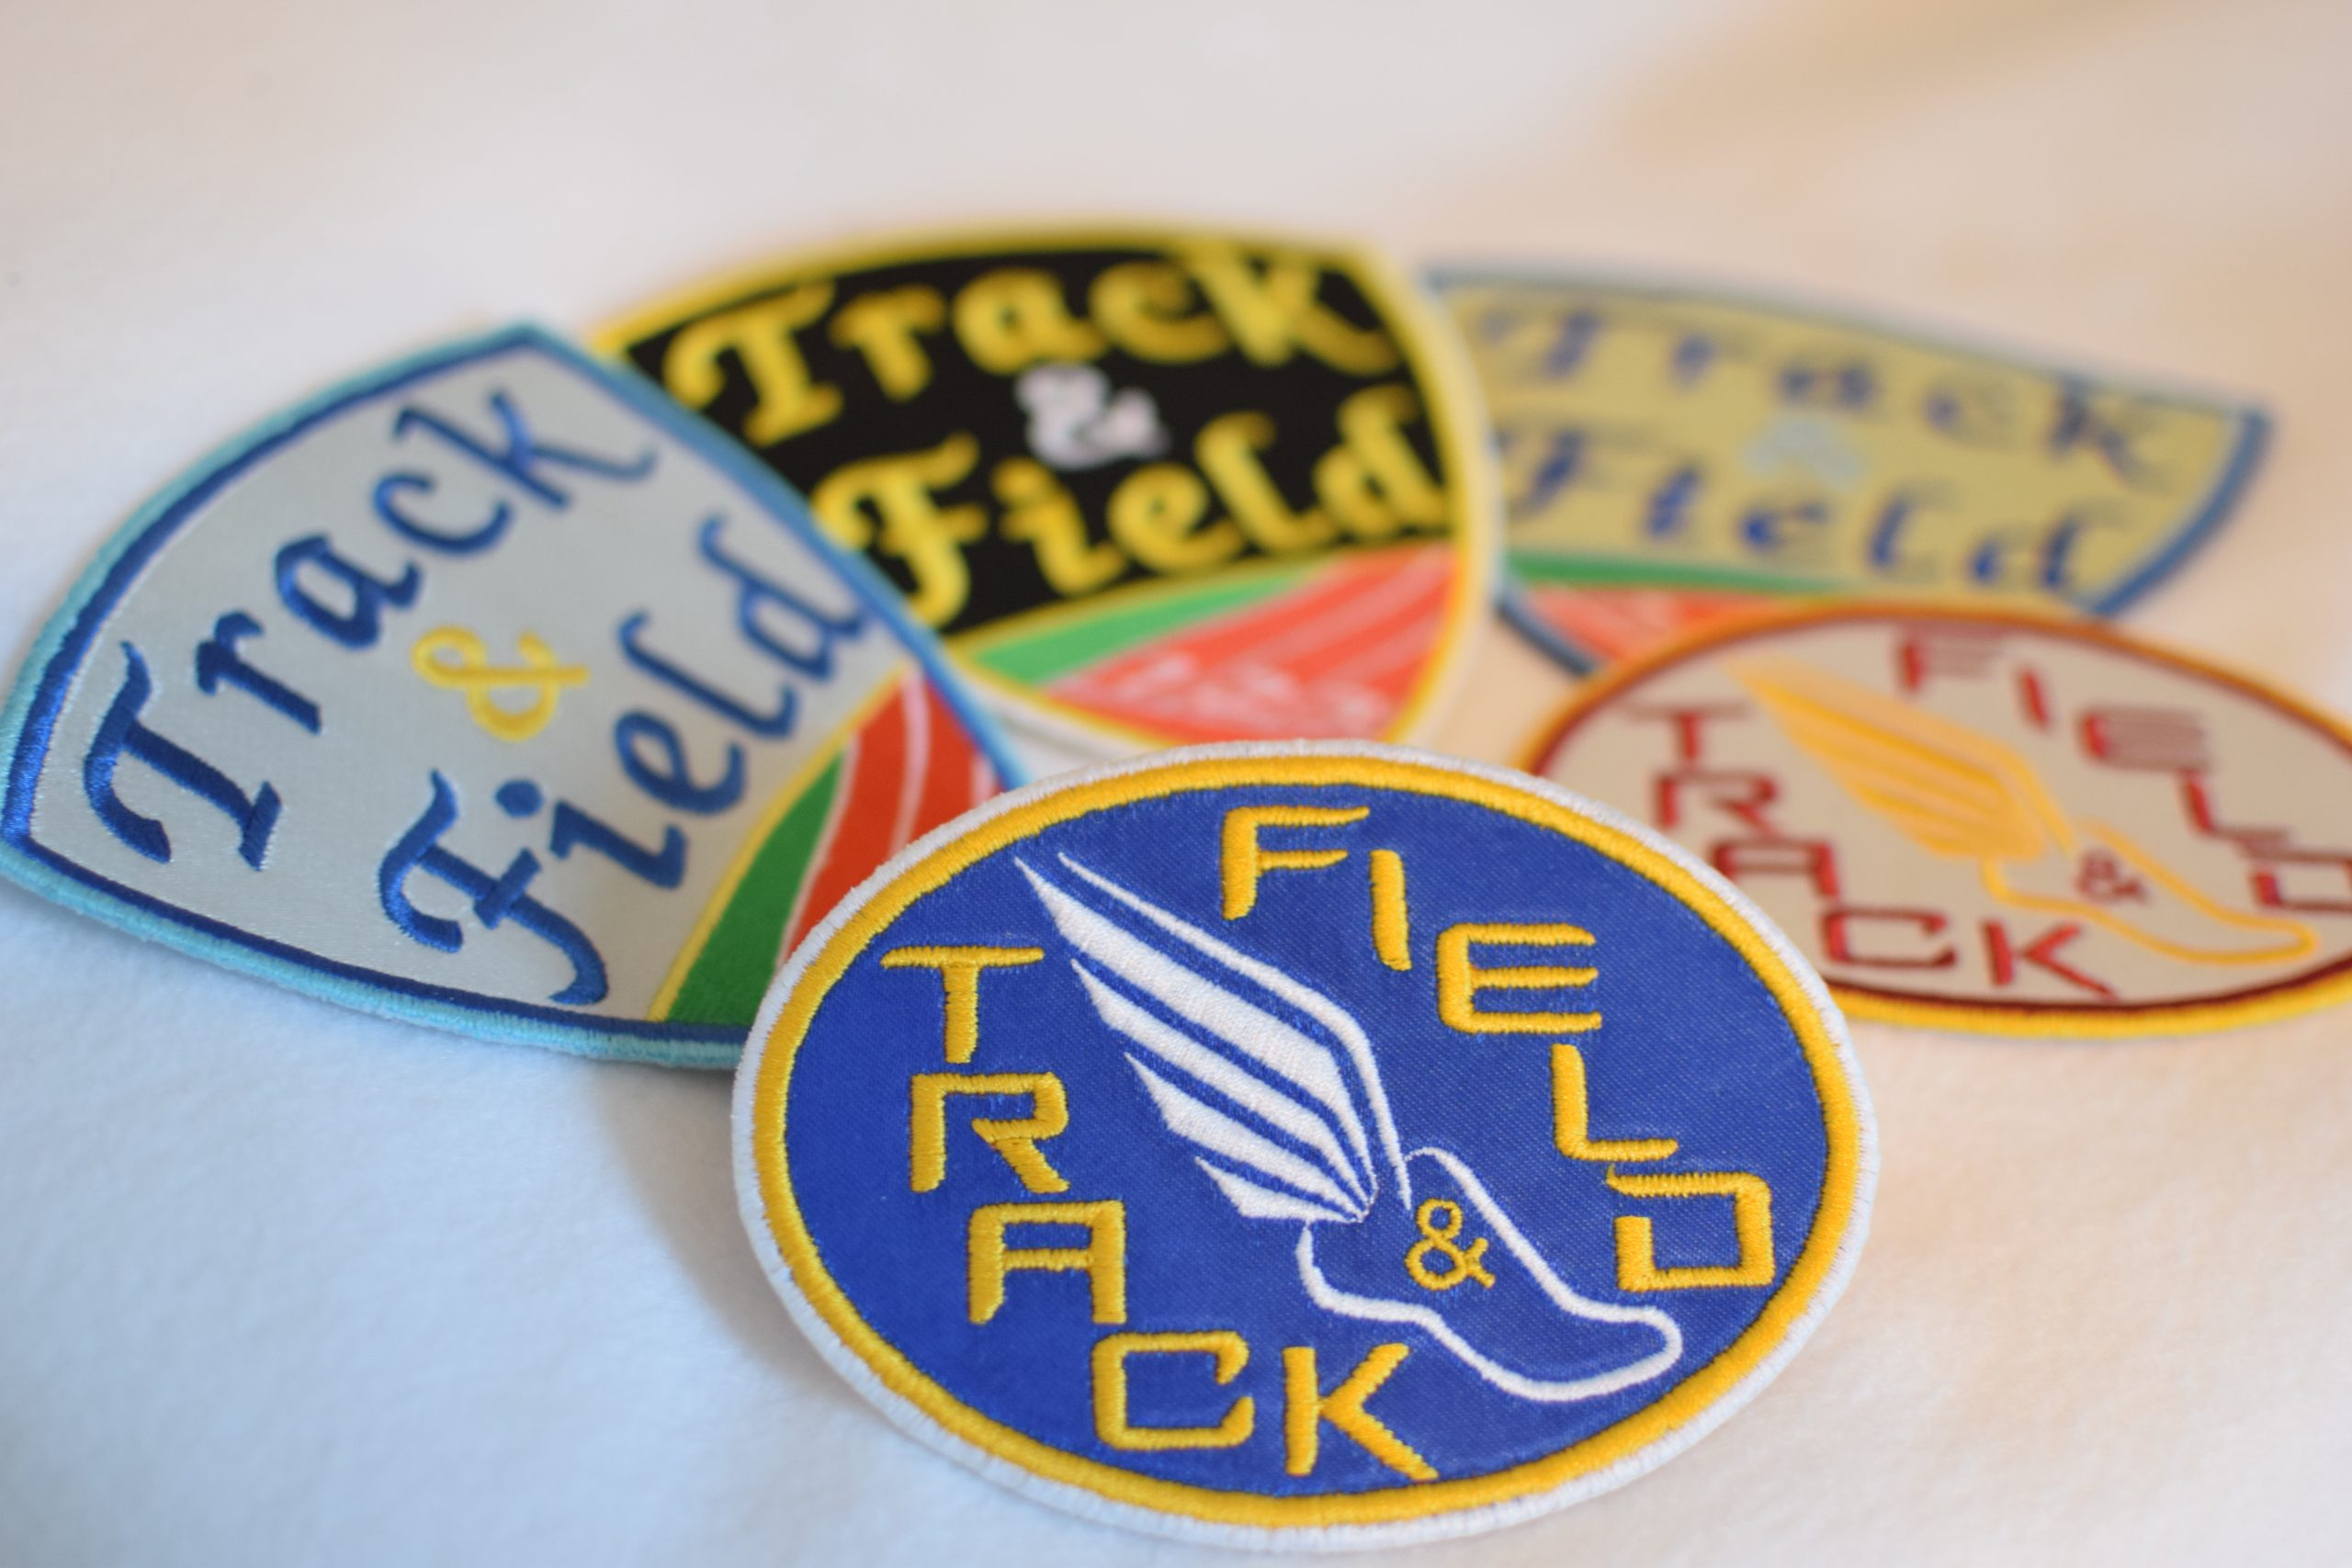 Track & Field Embroidered Patches